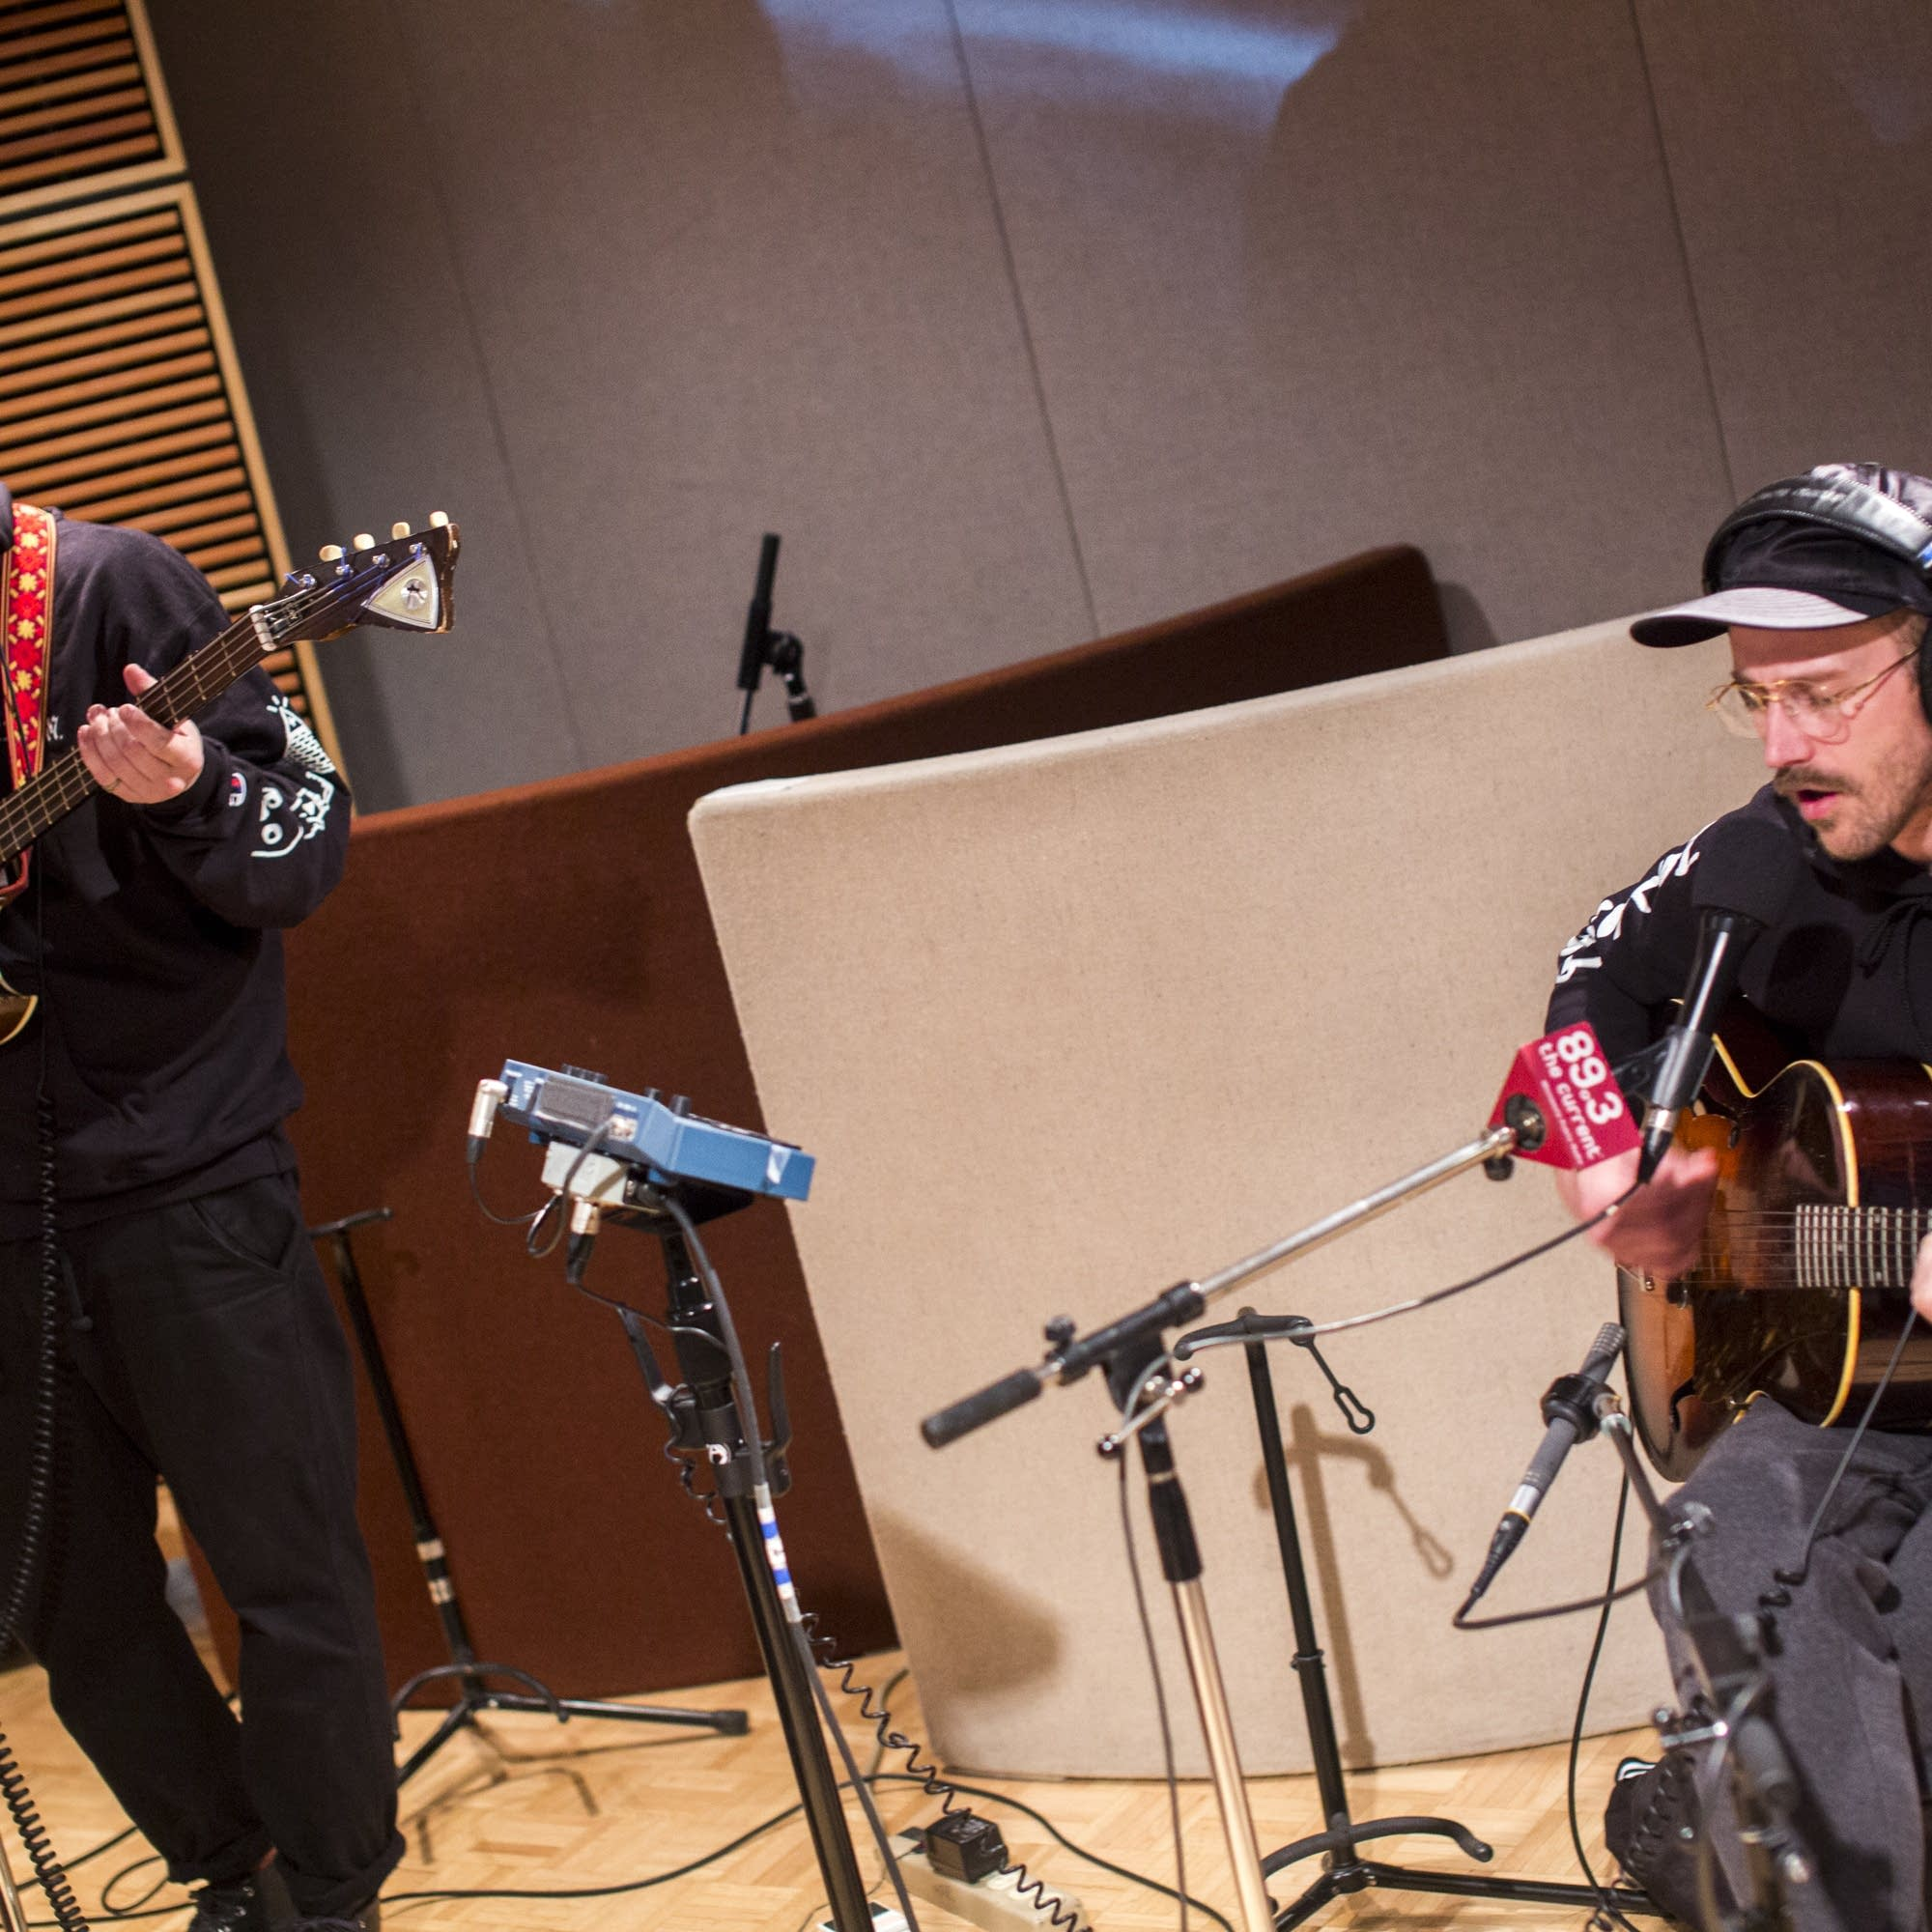 Portugal the Man perform in The Current studio